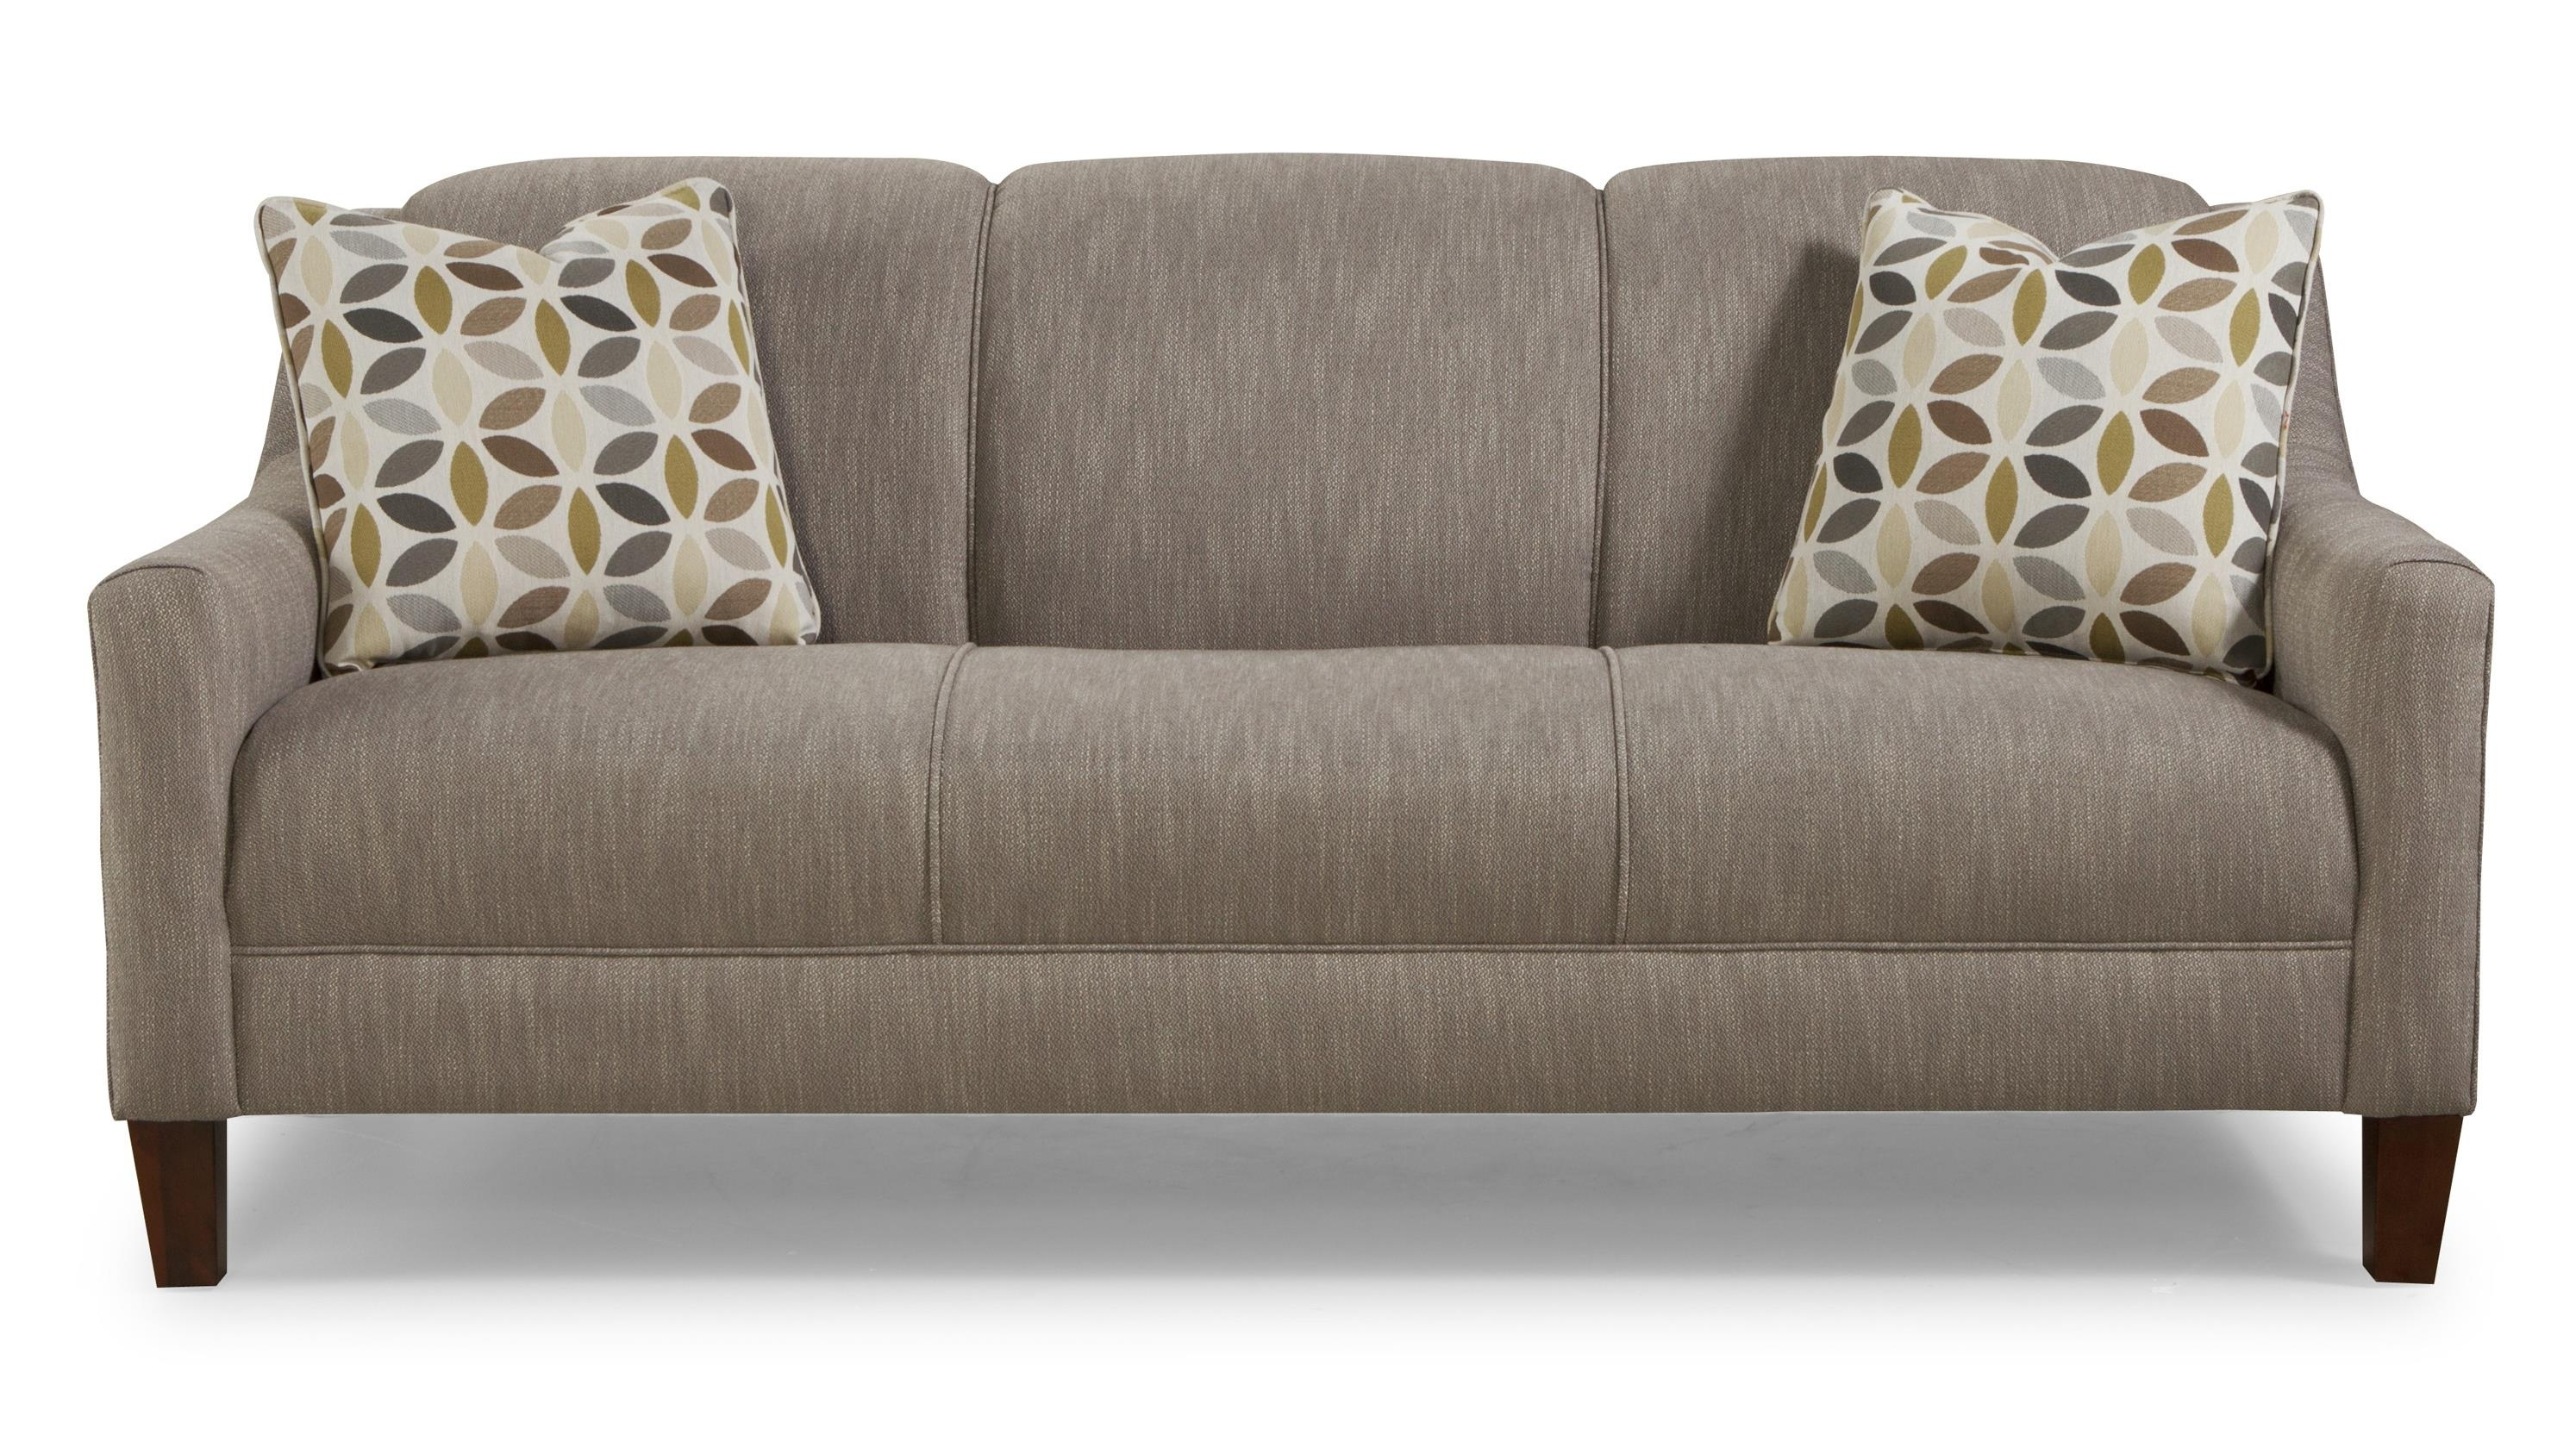 Sofa: Stylish Apartment Size Sofas Sofas Under 80 Inches, Vaughn within Apartment Sofas (Image 9 of 10)